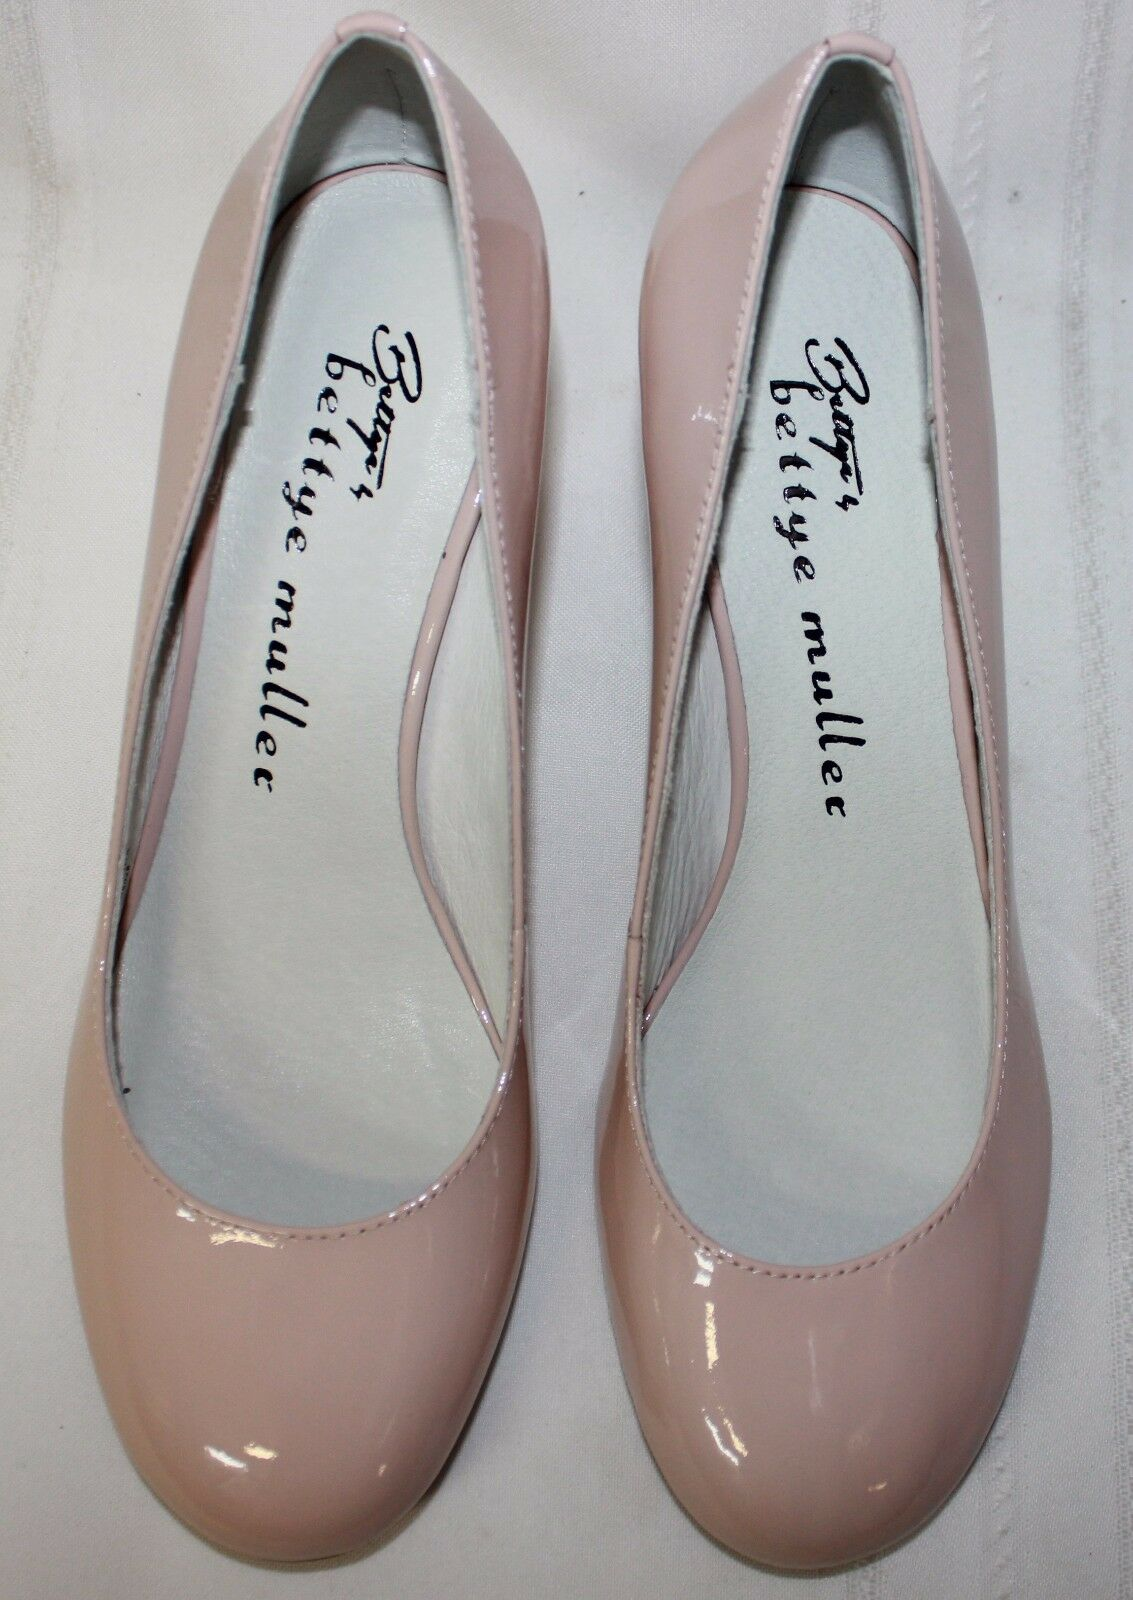 Bettye Bettye Bettye by Bettye Muller Colette Blaush Patent Leather Pumps schuhe New With Box 145d16